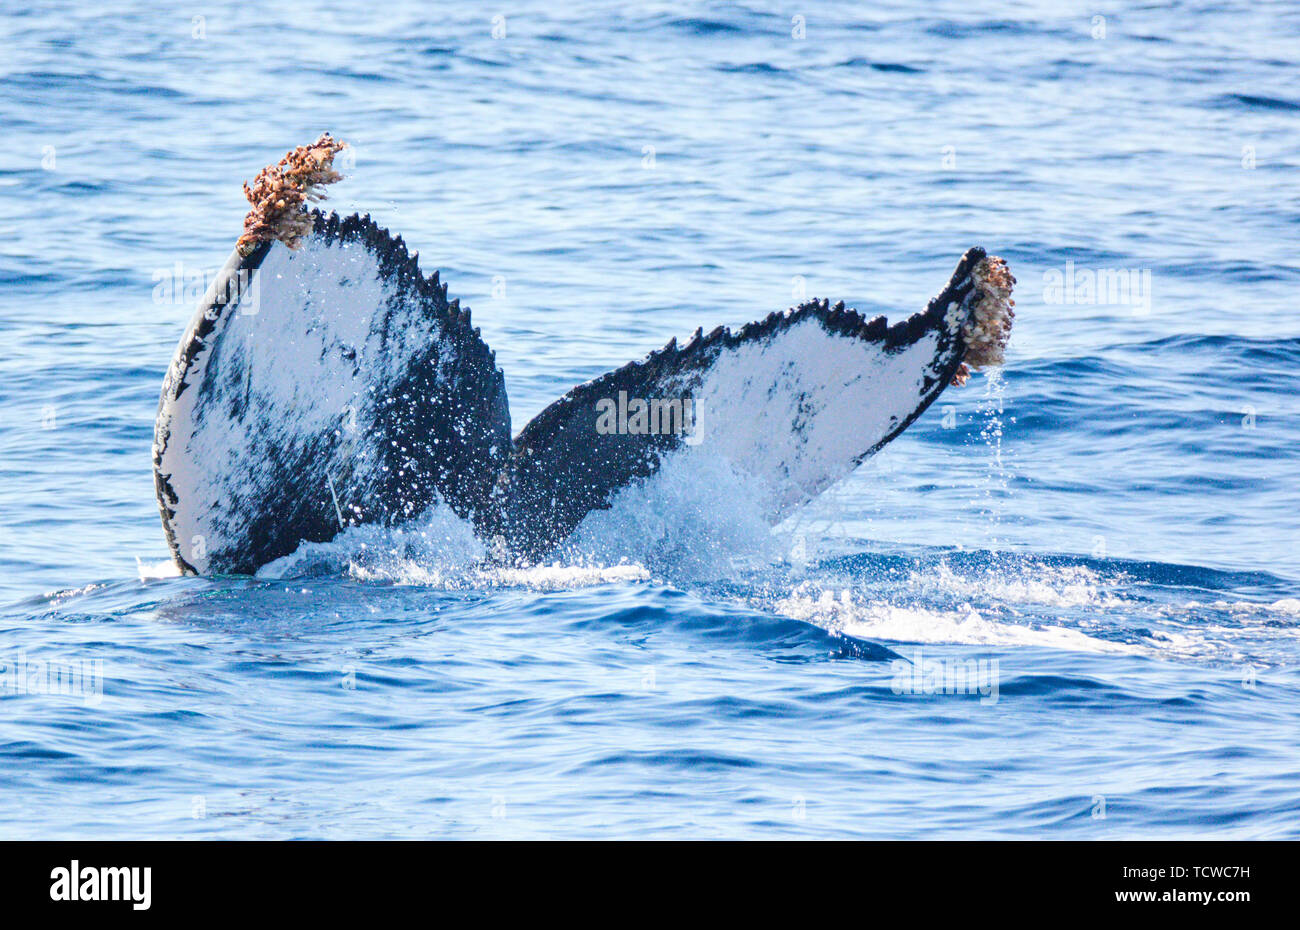 Tourist boat on a trip for whale watching, humbpack whale in Adeje, Tenerife, Spain, March 18, 2019. © Peter Schatz / Alamy Stock Photos - Stock Image